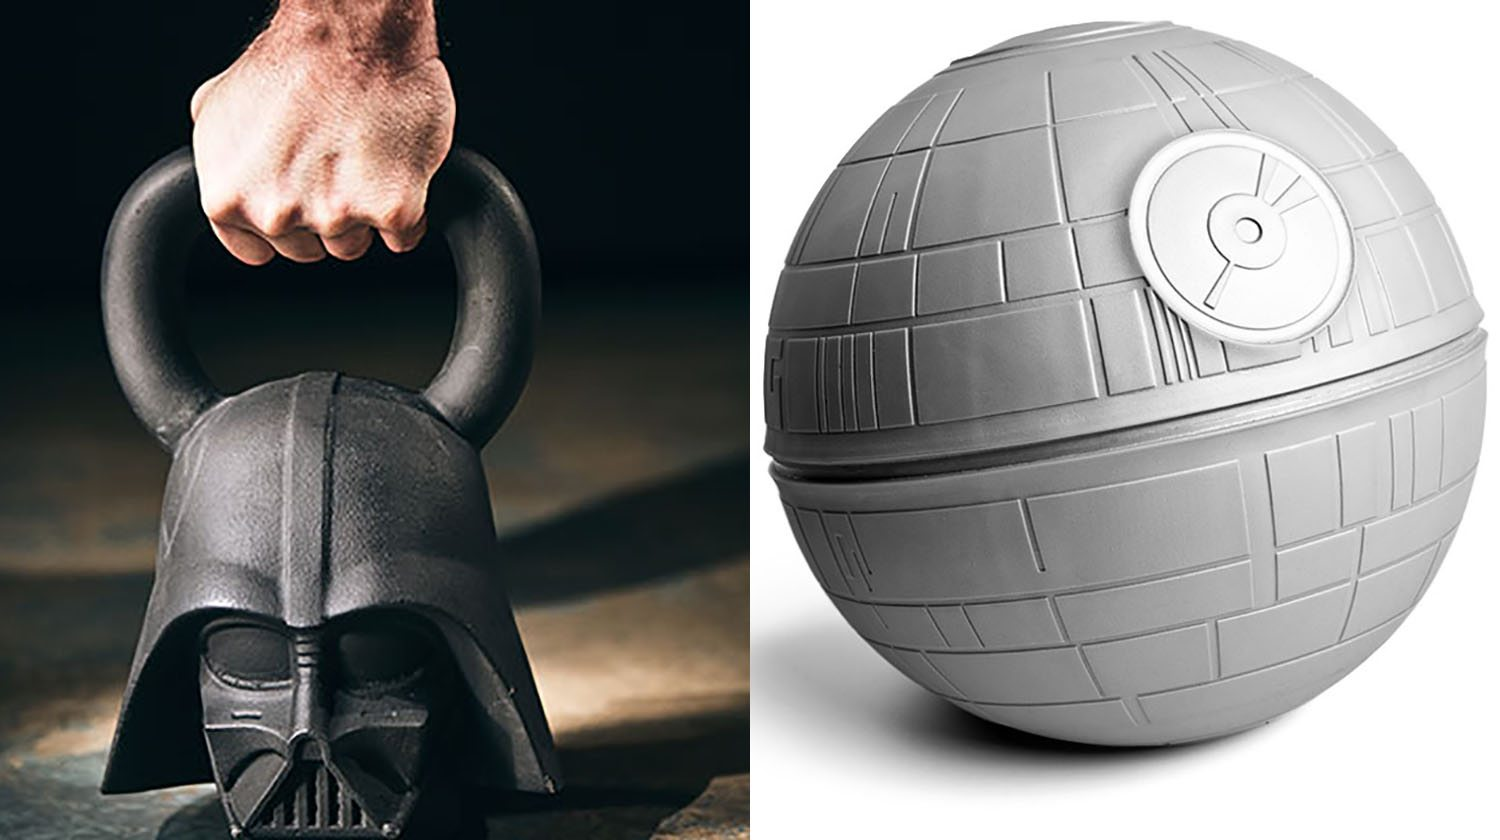 Star Wars Cooking Supplies 39star Wars 39 Fitness And Workout Gear From Onnit Simplemost